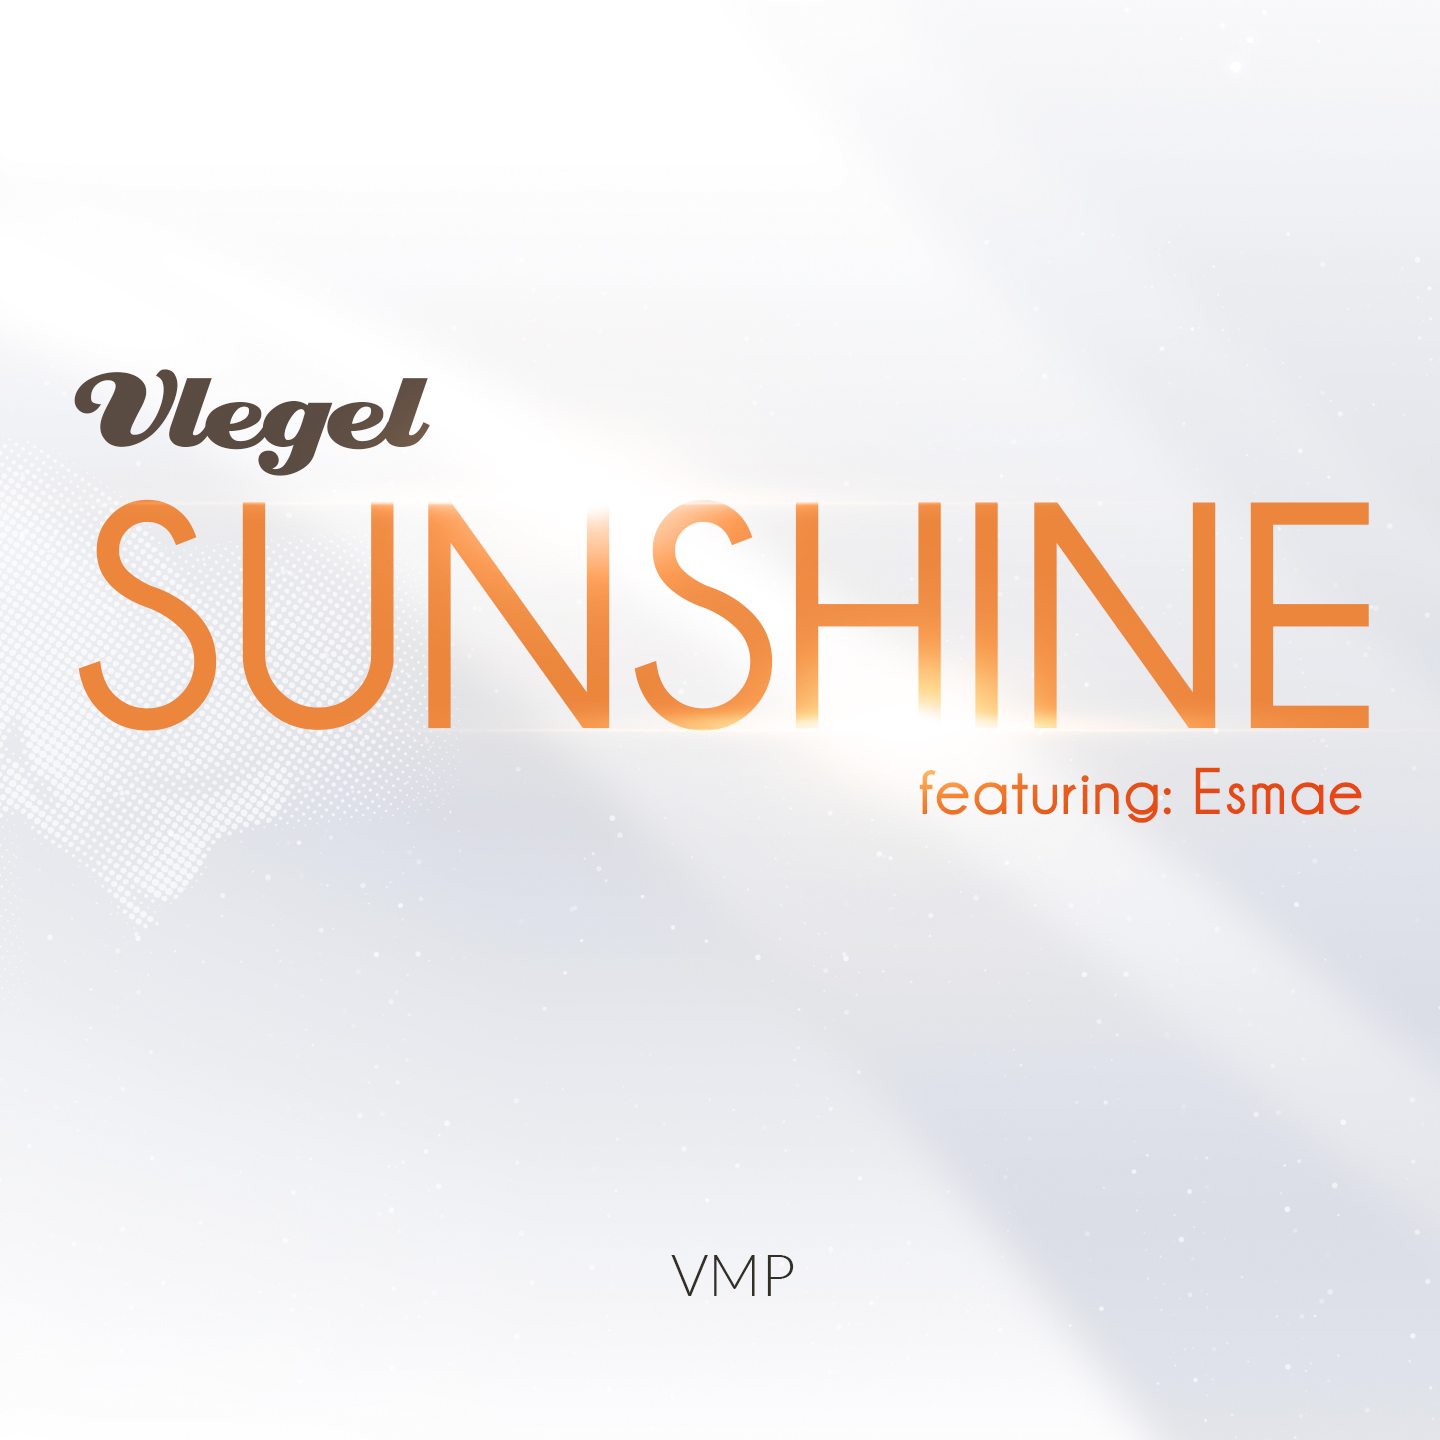 VMP-vlegel-sunshine